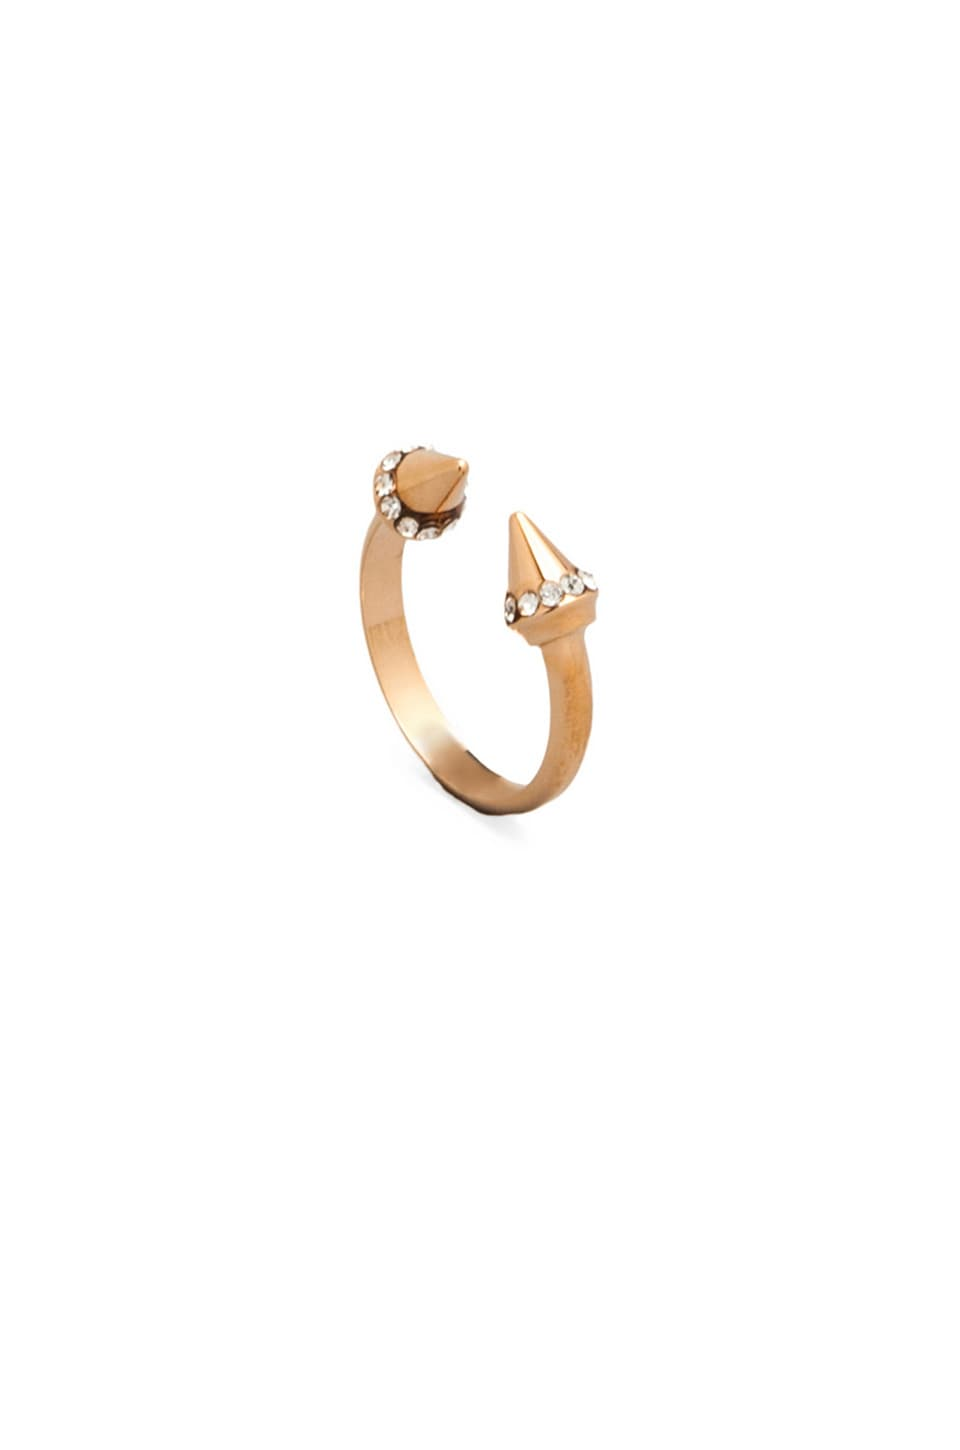 Vita Fede Ultra Mini Titan Crystal Ring in Rosegold & Clear